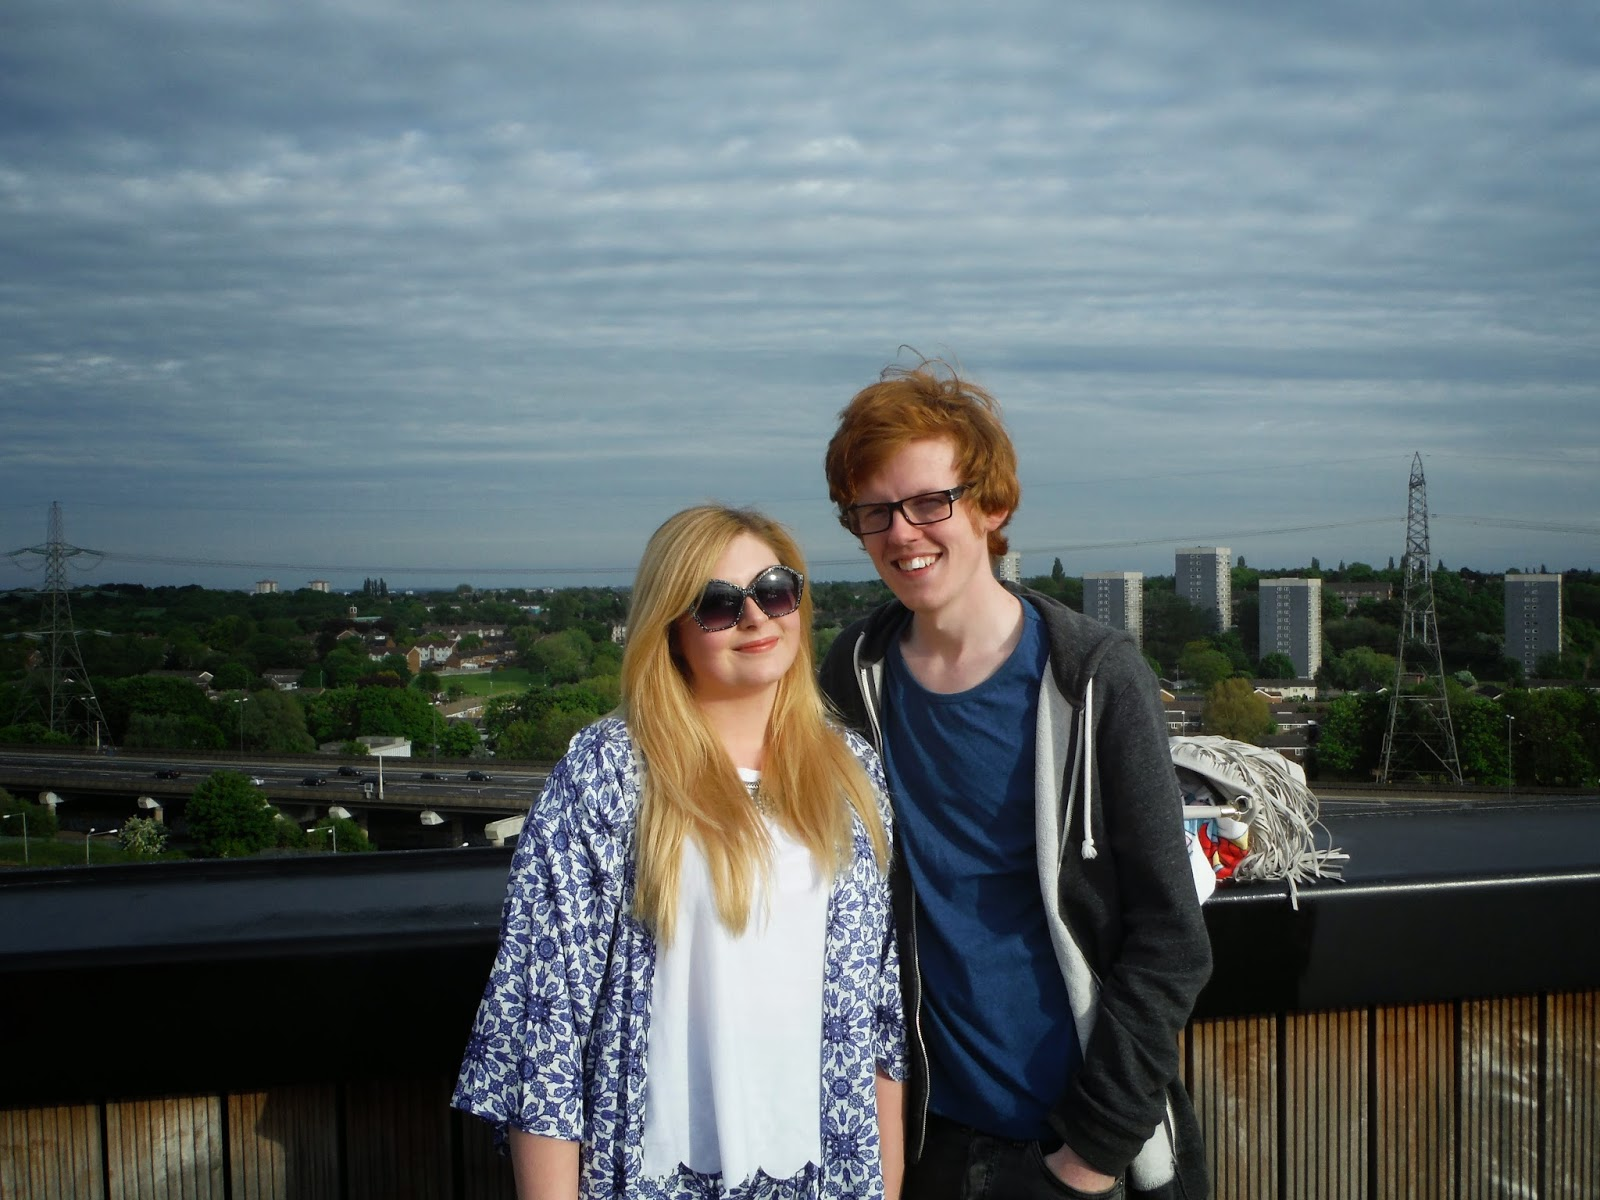 My self and Sean on the Roof of Fort Dunlop with Birmingham in the background